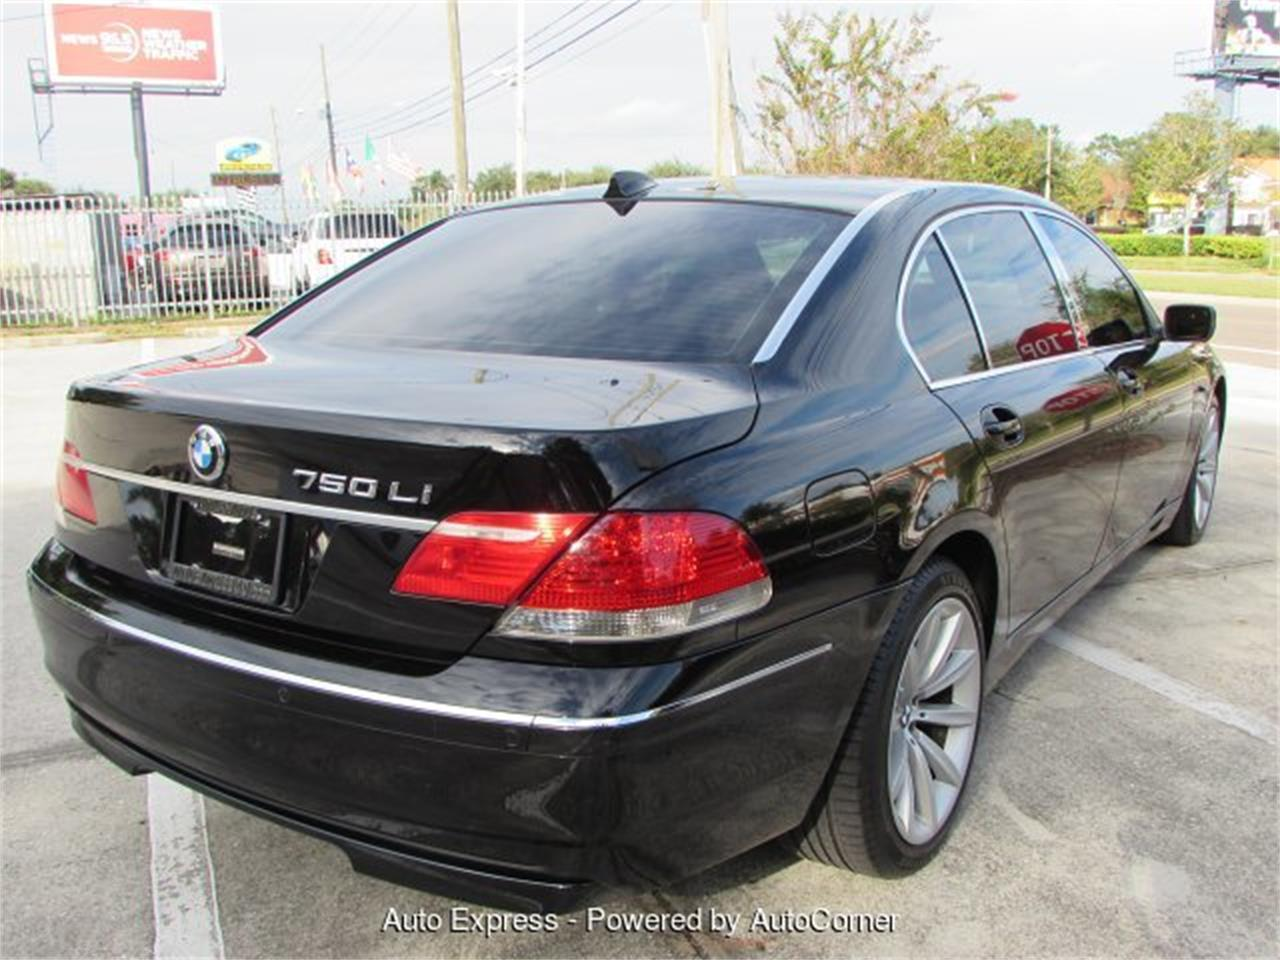 2007 BMW 7 Series for sale in Orlando, FL – photo 8